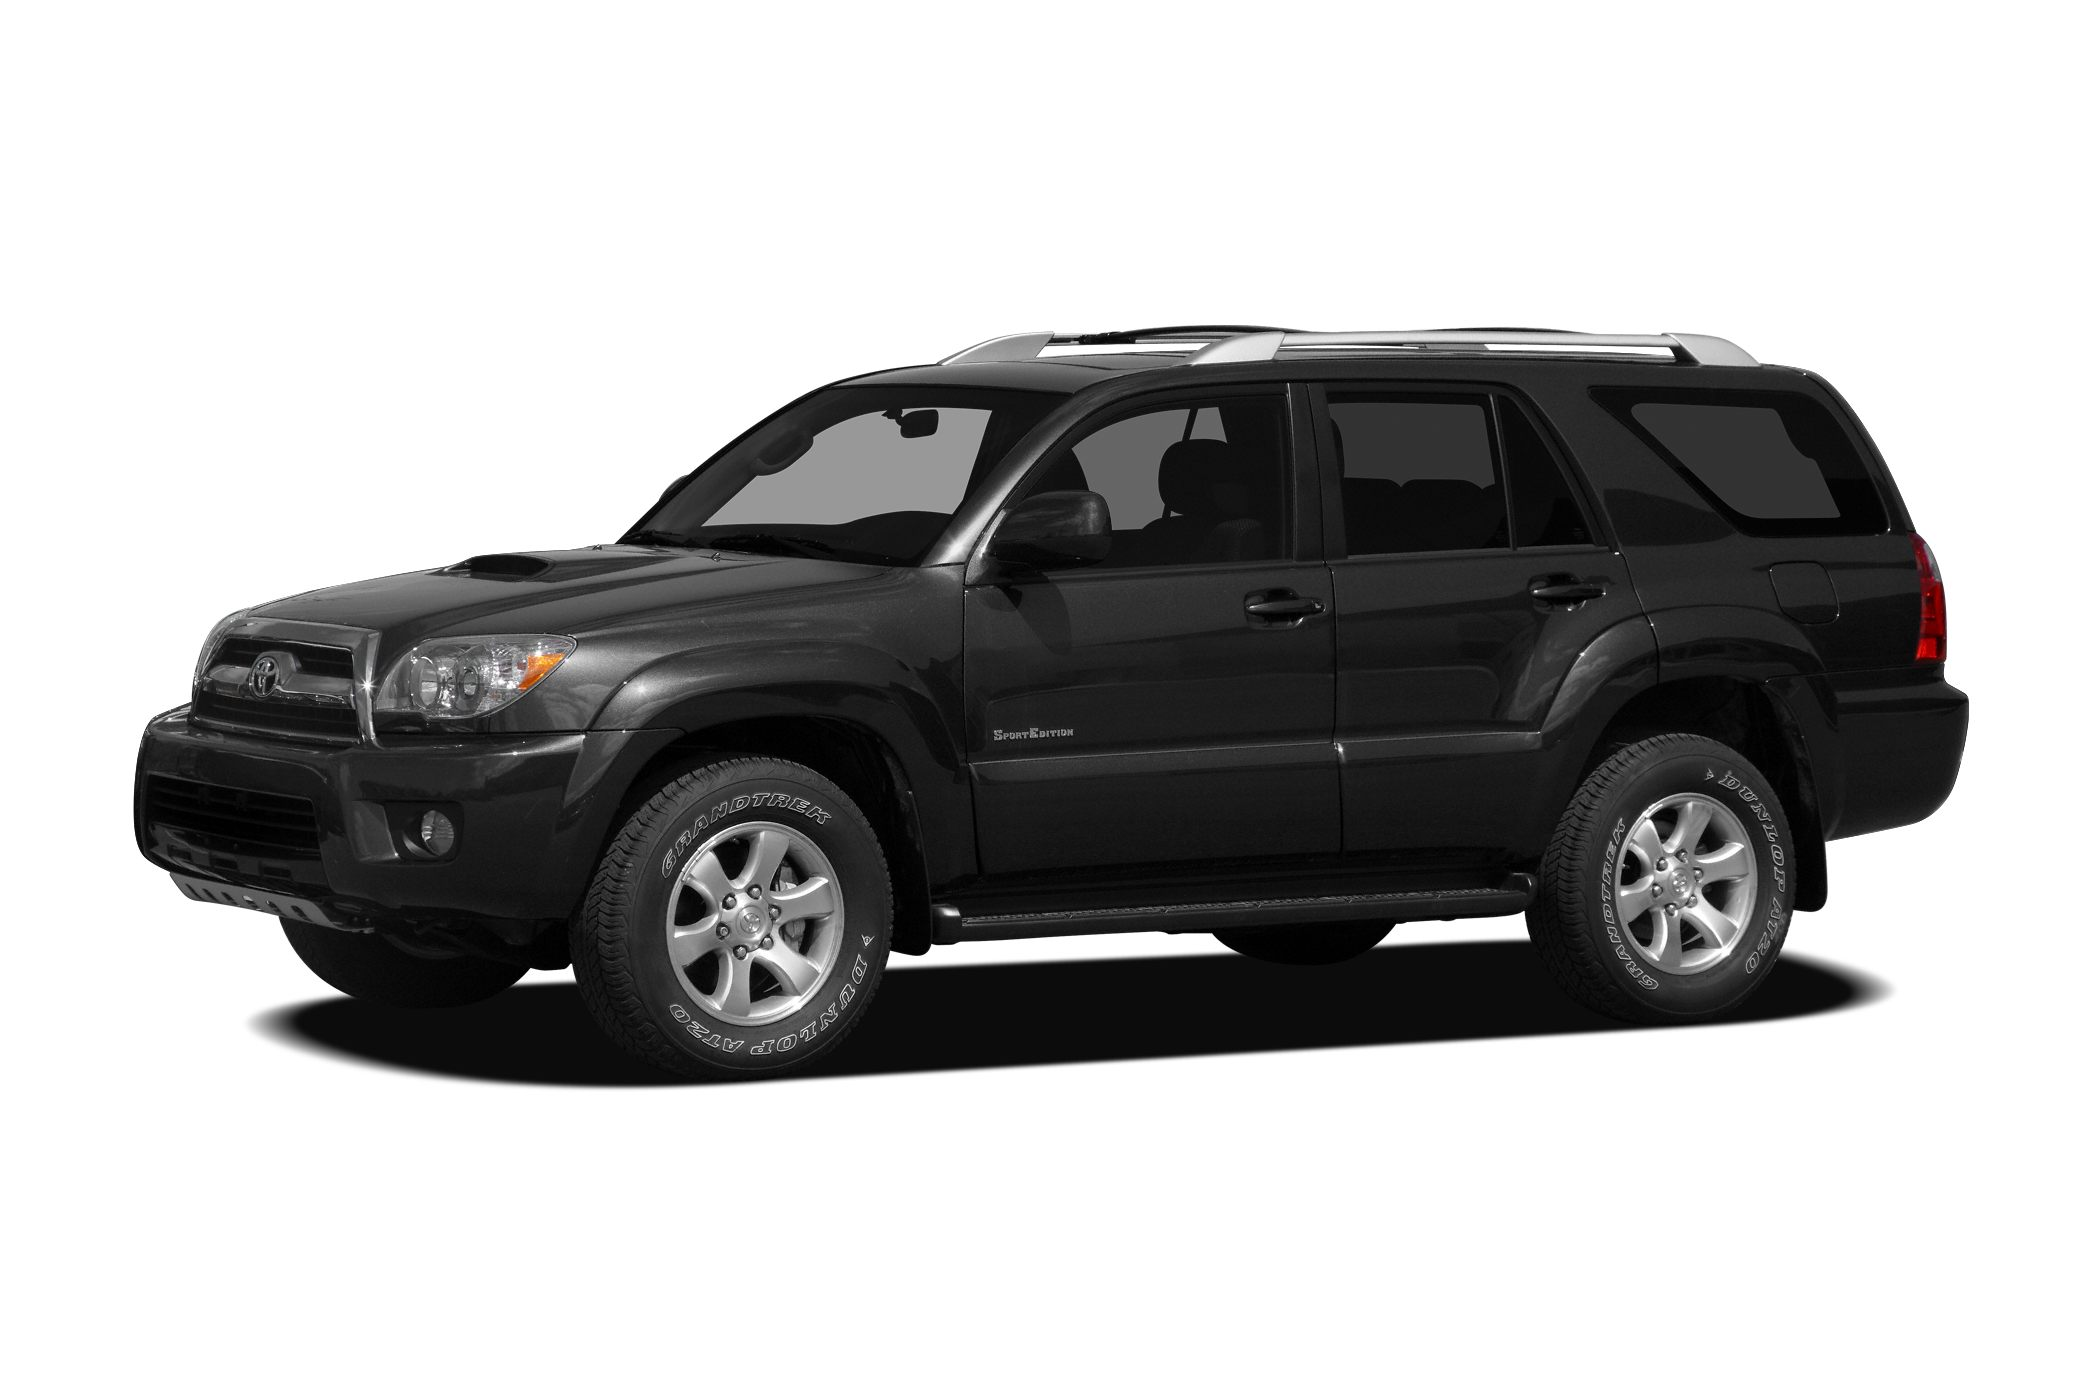 2008 Toyota 4Runner SR5 SUV for sale in Shreveport for $15,900 with 146,812 miles.